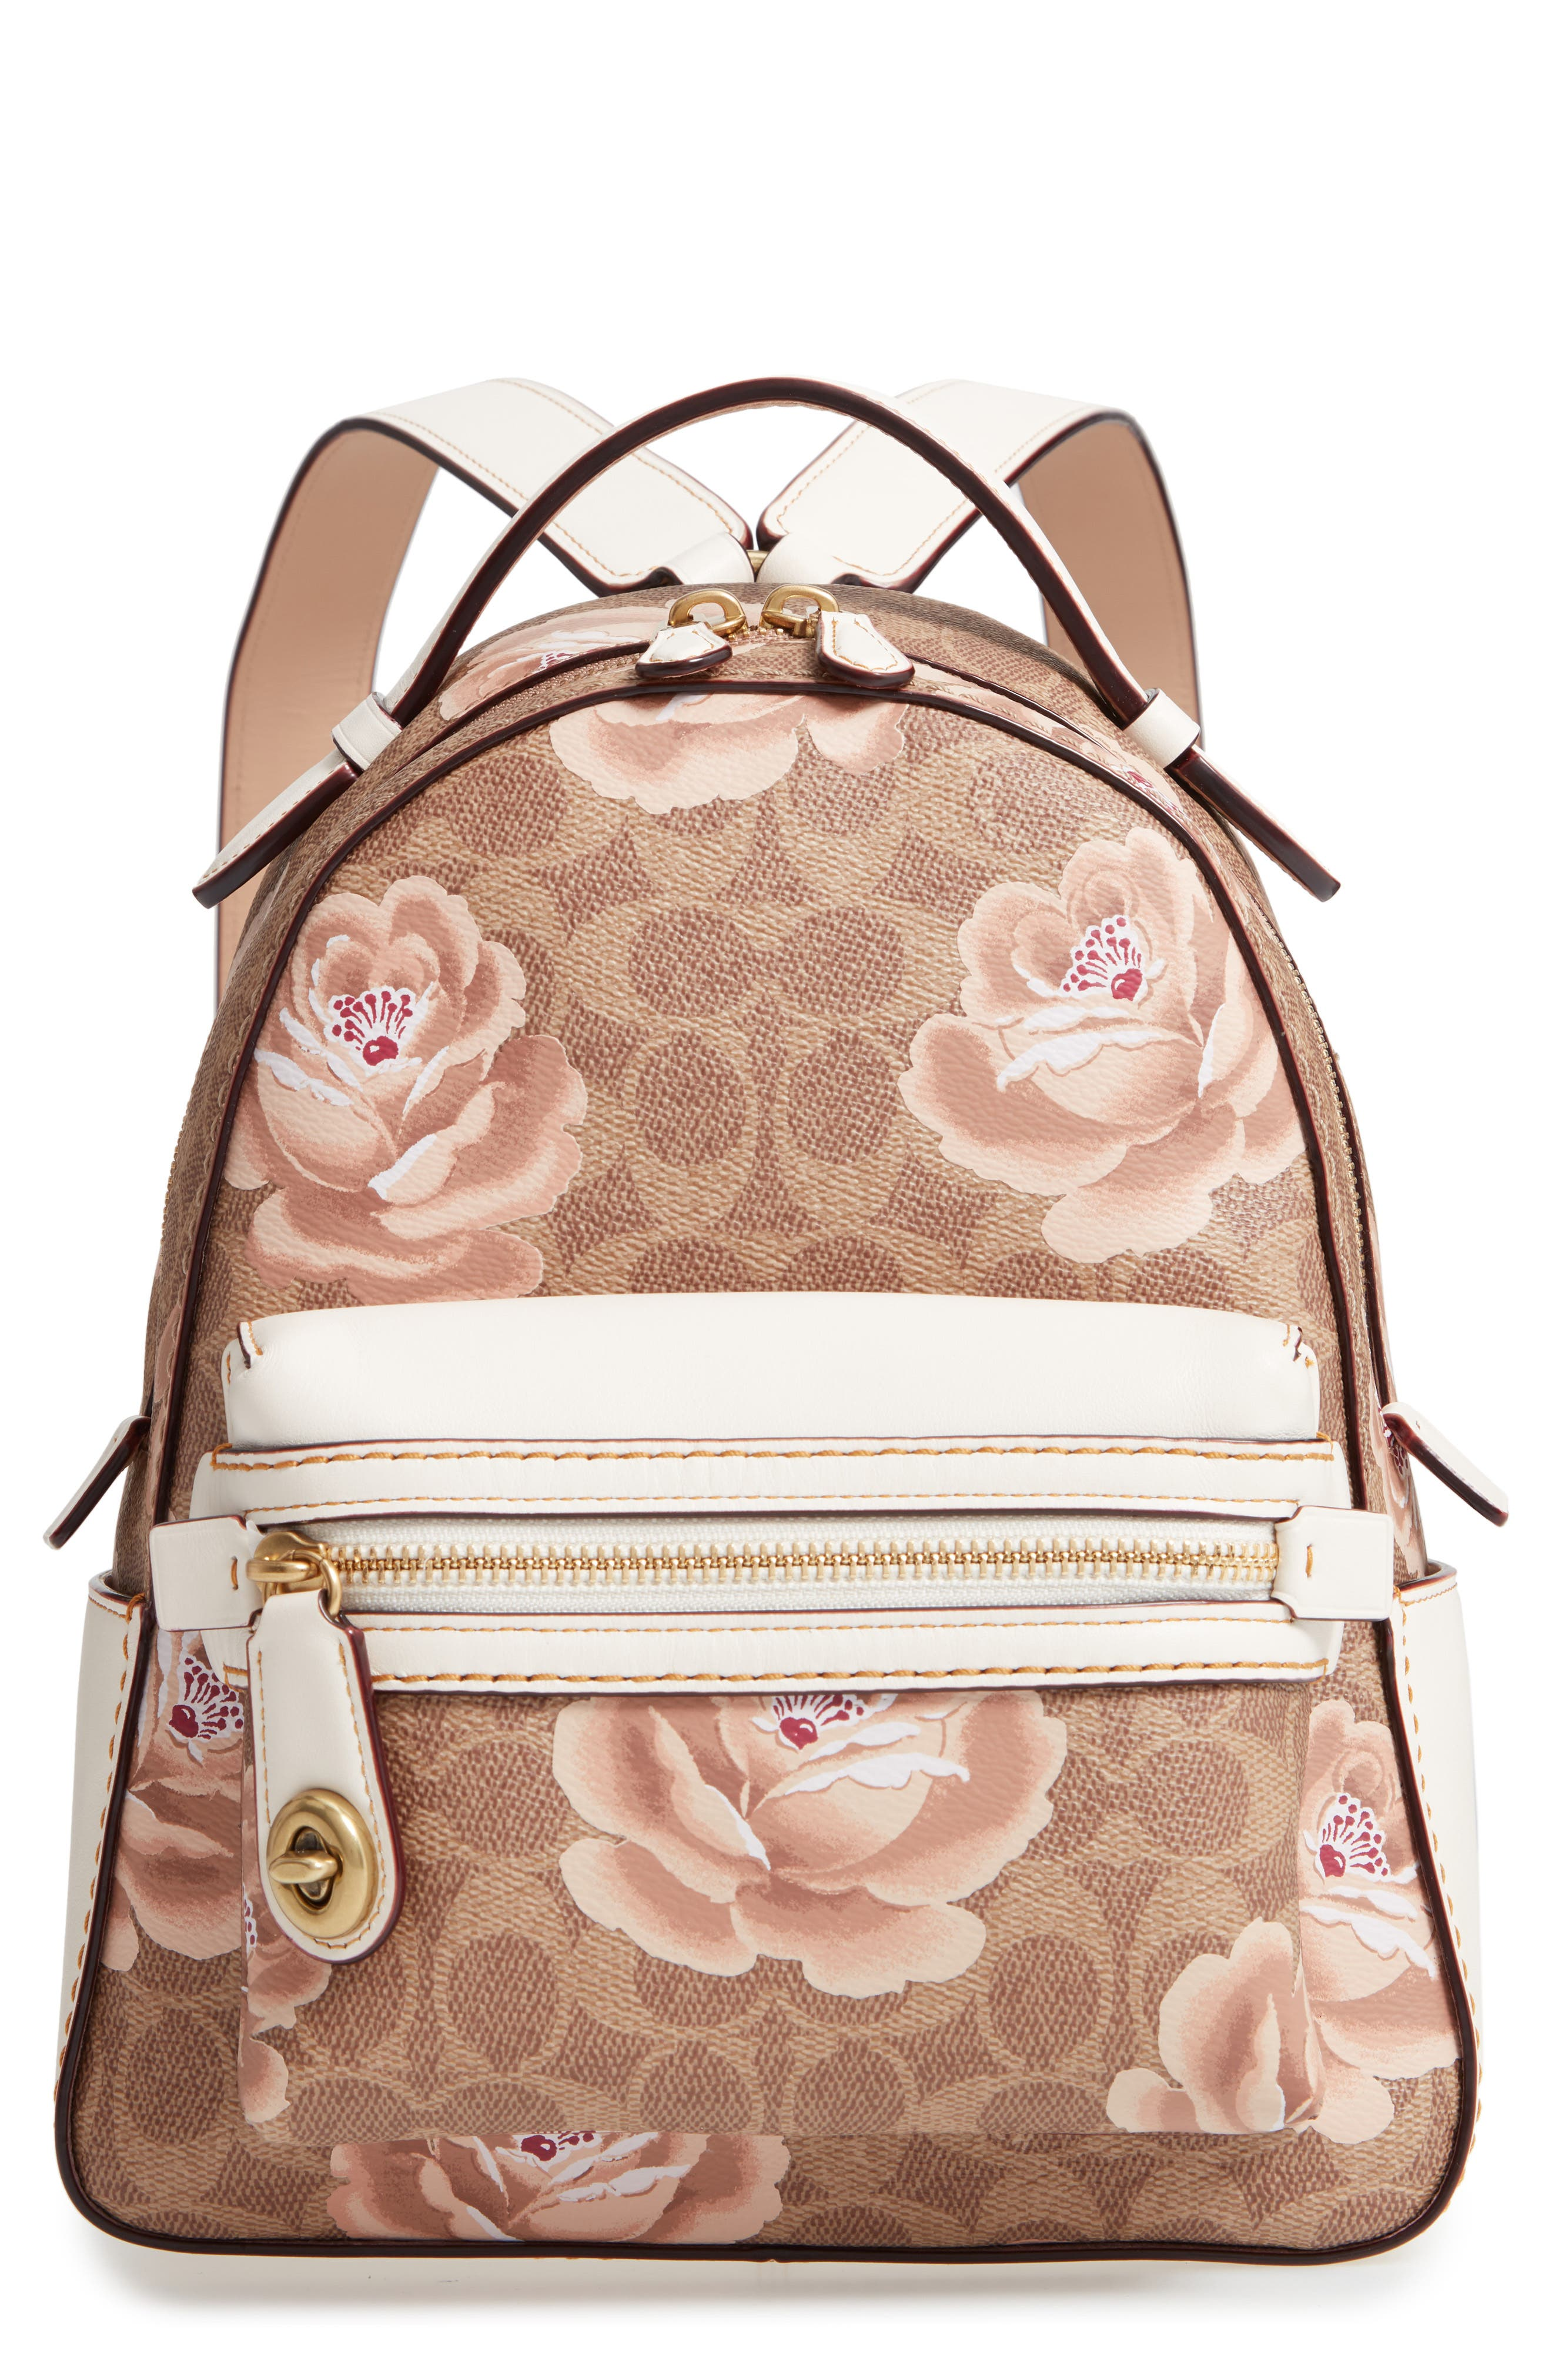 COACH Campus Signature Rose Coated Canvas Backpack, Main, color, 250